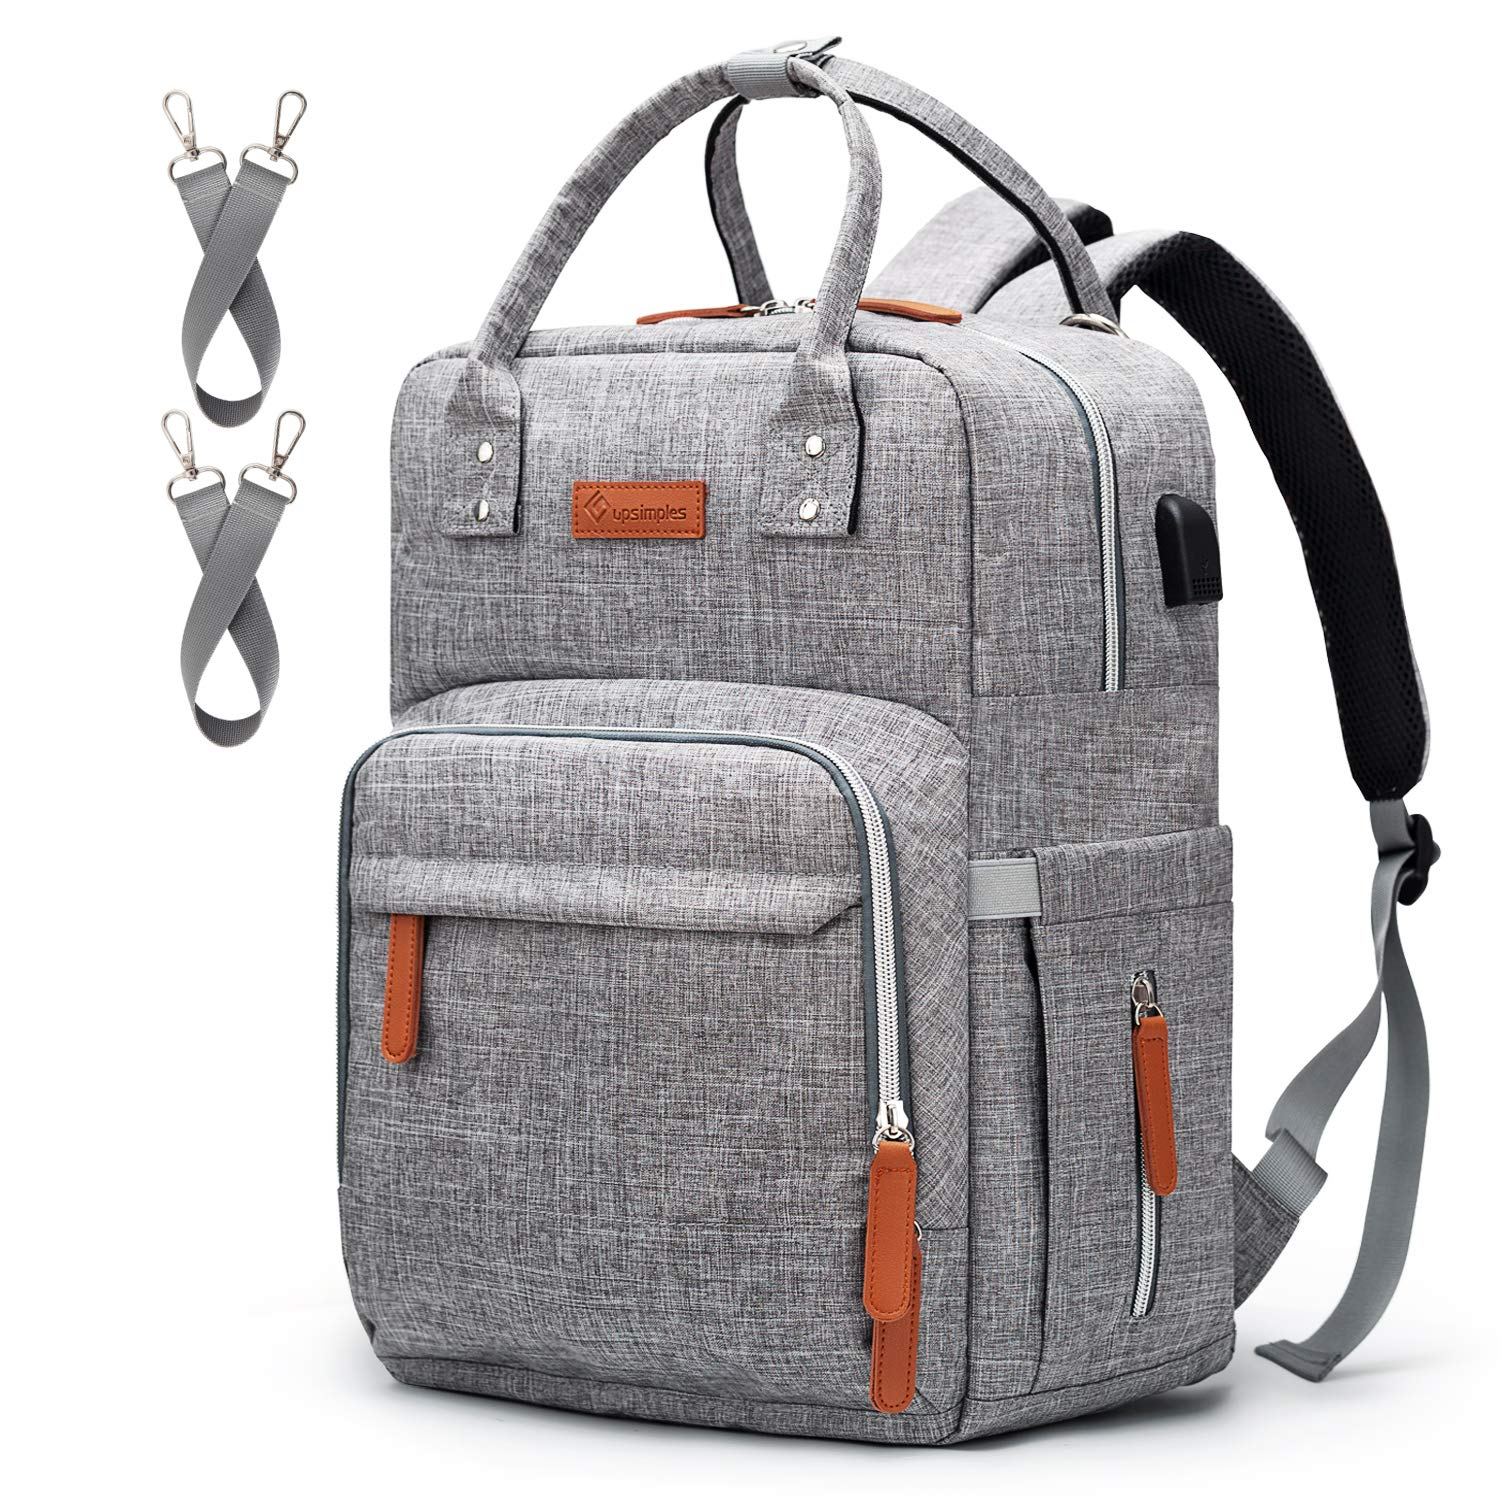 Diaper Bag Backpack Upsimples Multi-Function Maternity Nappy Bags for Mom&Dad, Baby Bag with Laptop Pocket,USB Charging Port,Stroller Straps -Light Grey